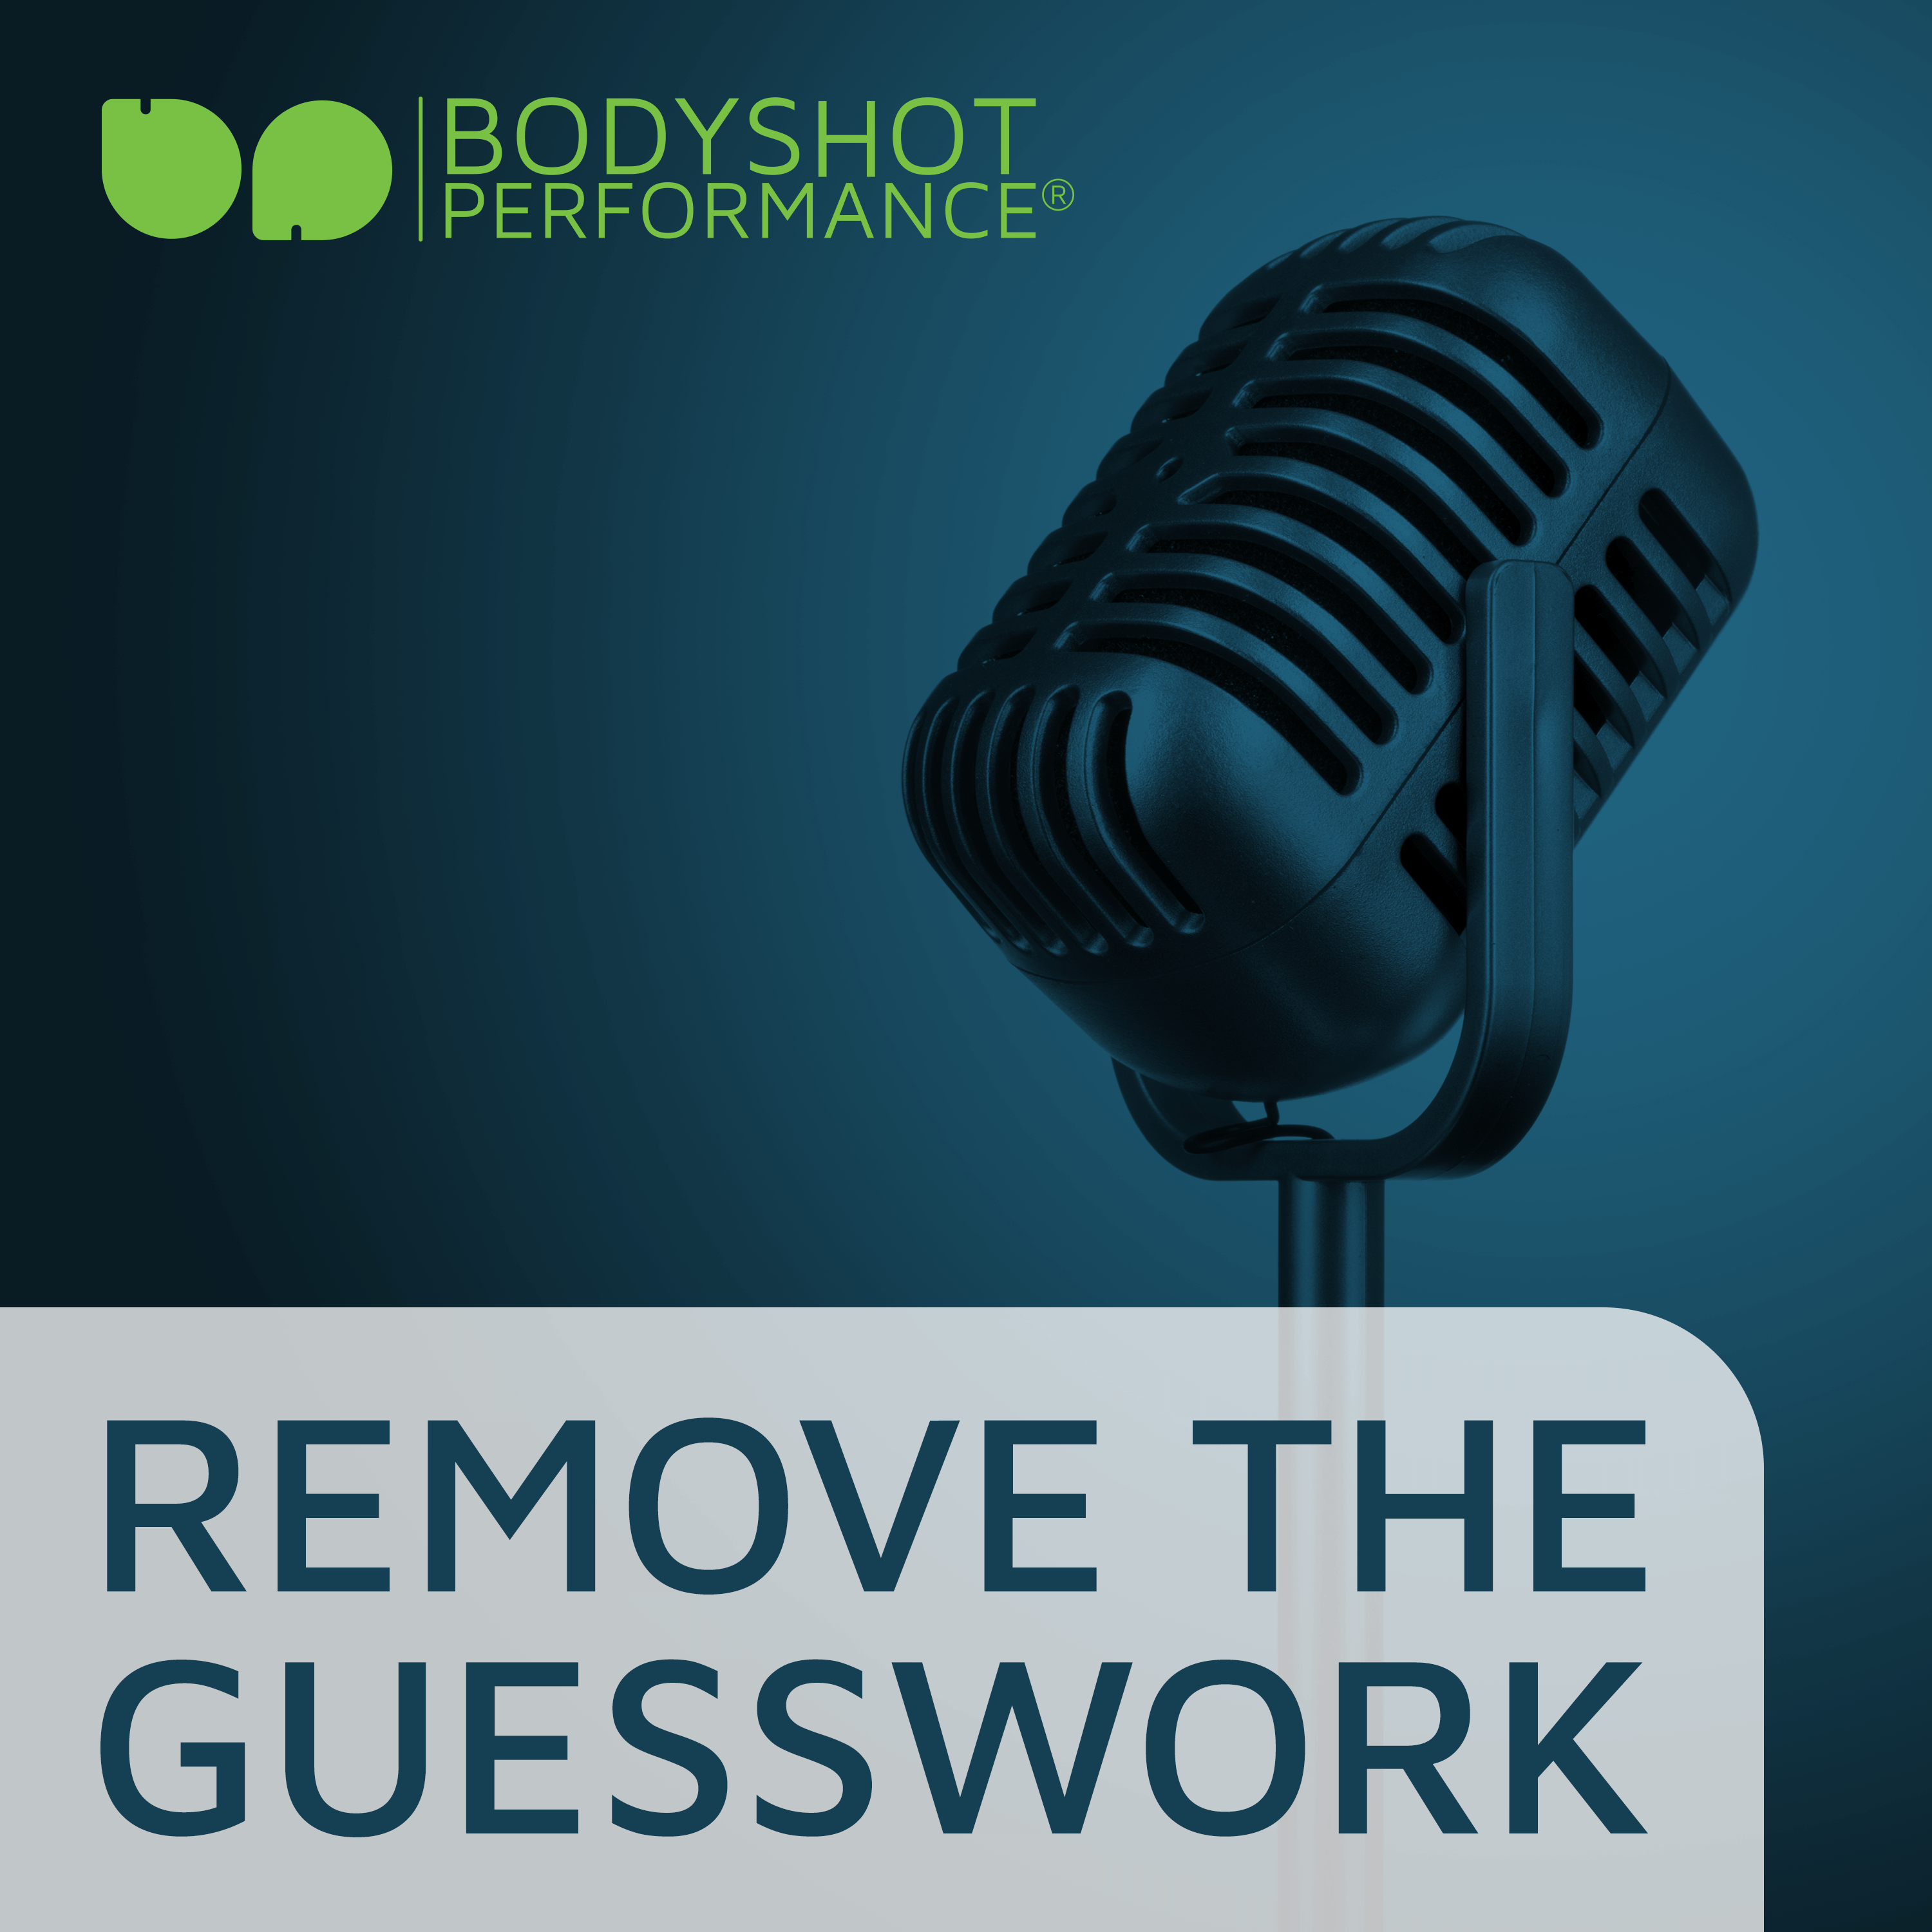 Remove the Guesswork: Health, Fitness and Wellbeing for Busy Professionals